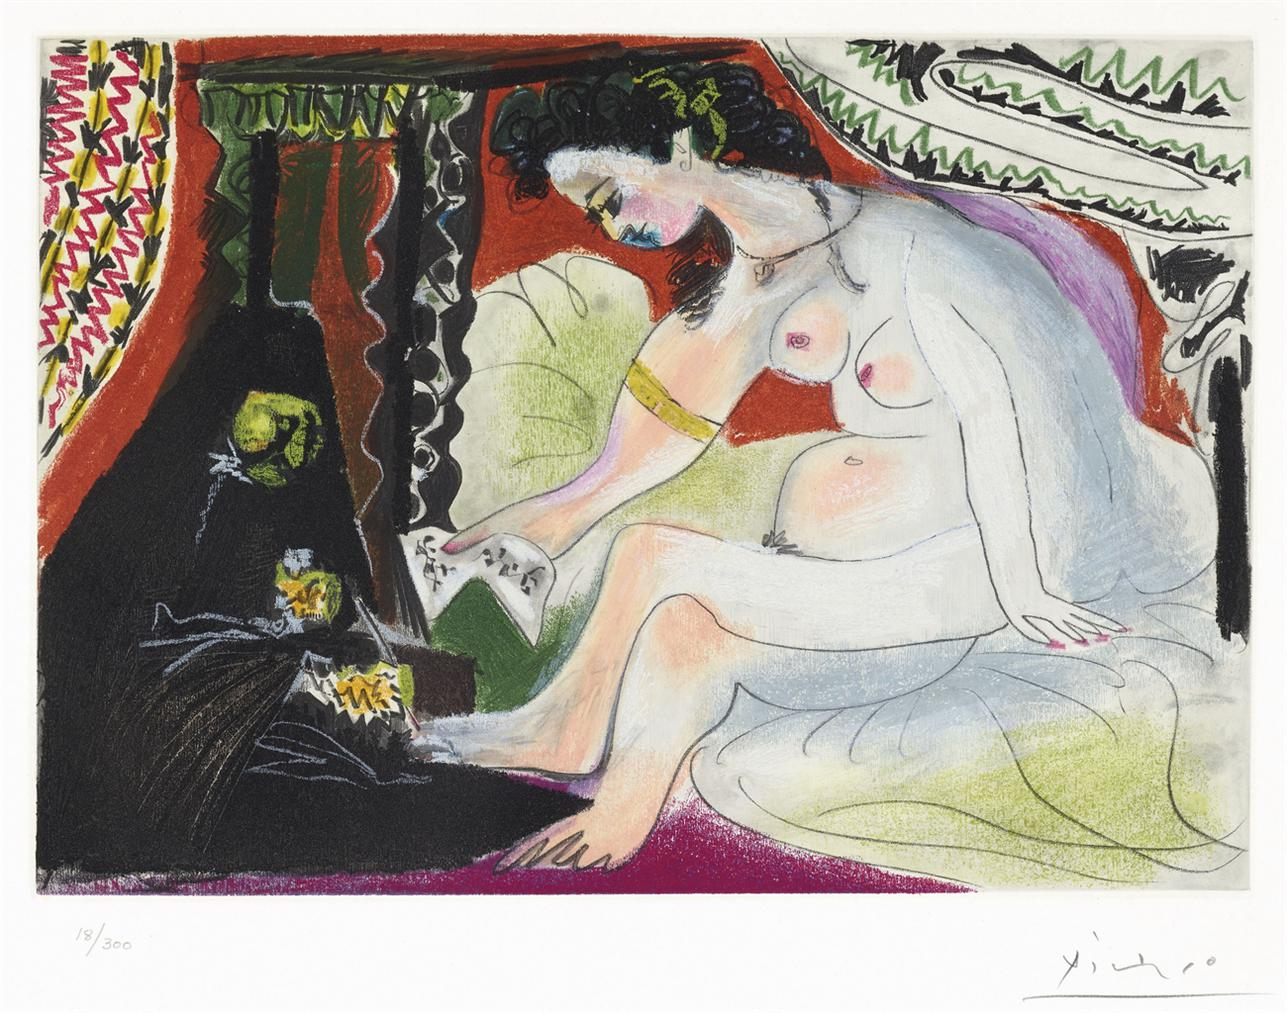 Pablo Picasso-After Pablo Picasso - Bethsabee-1960